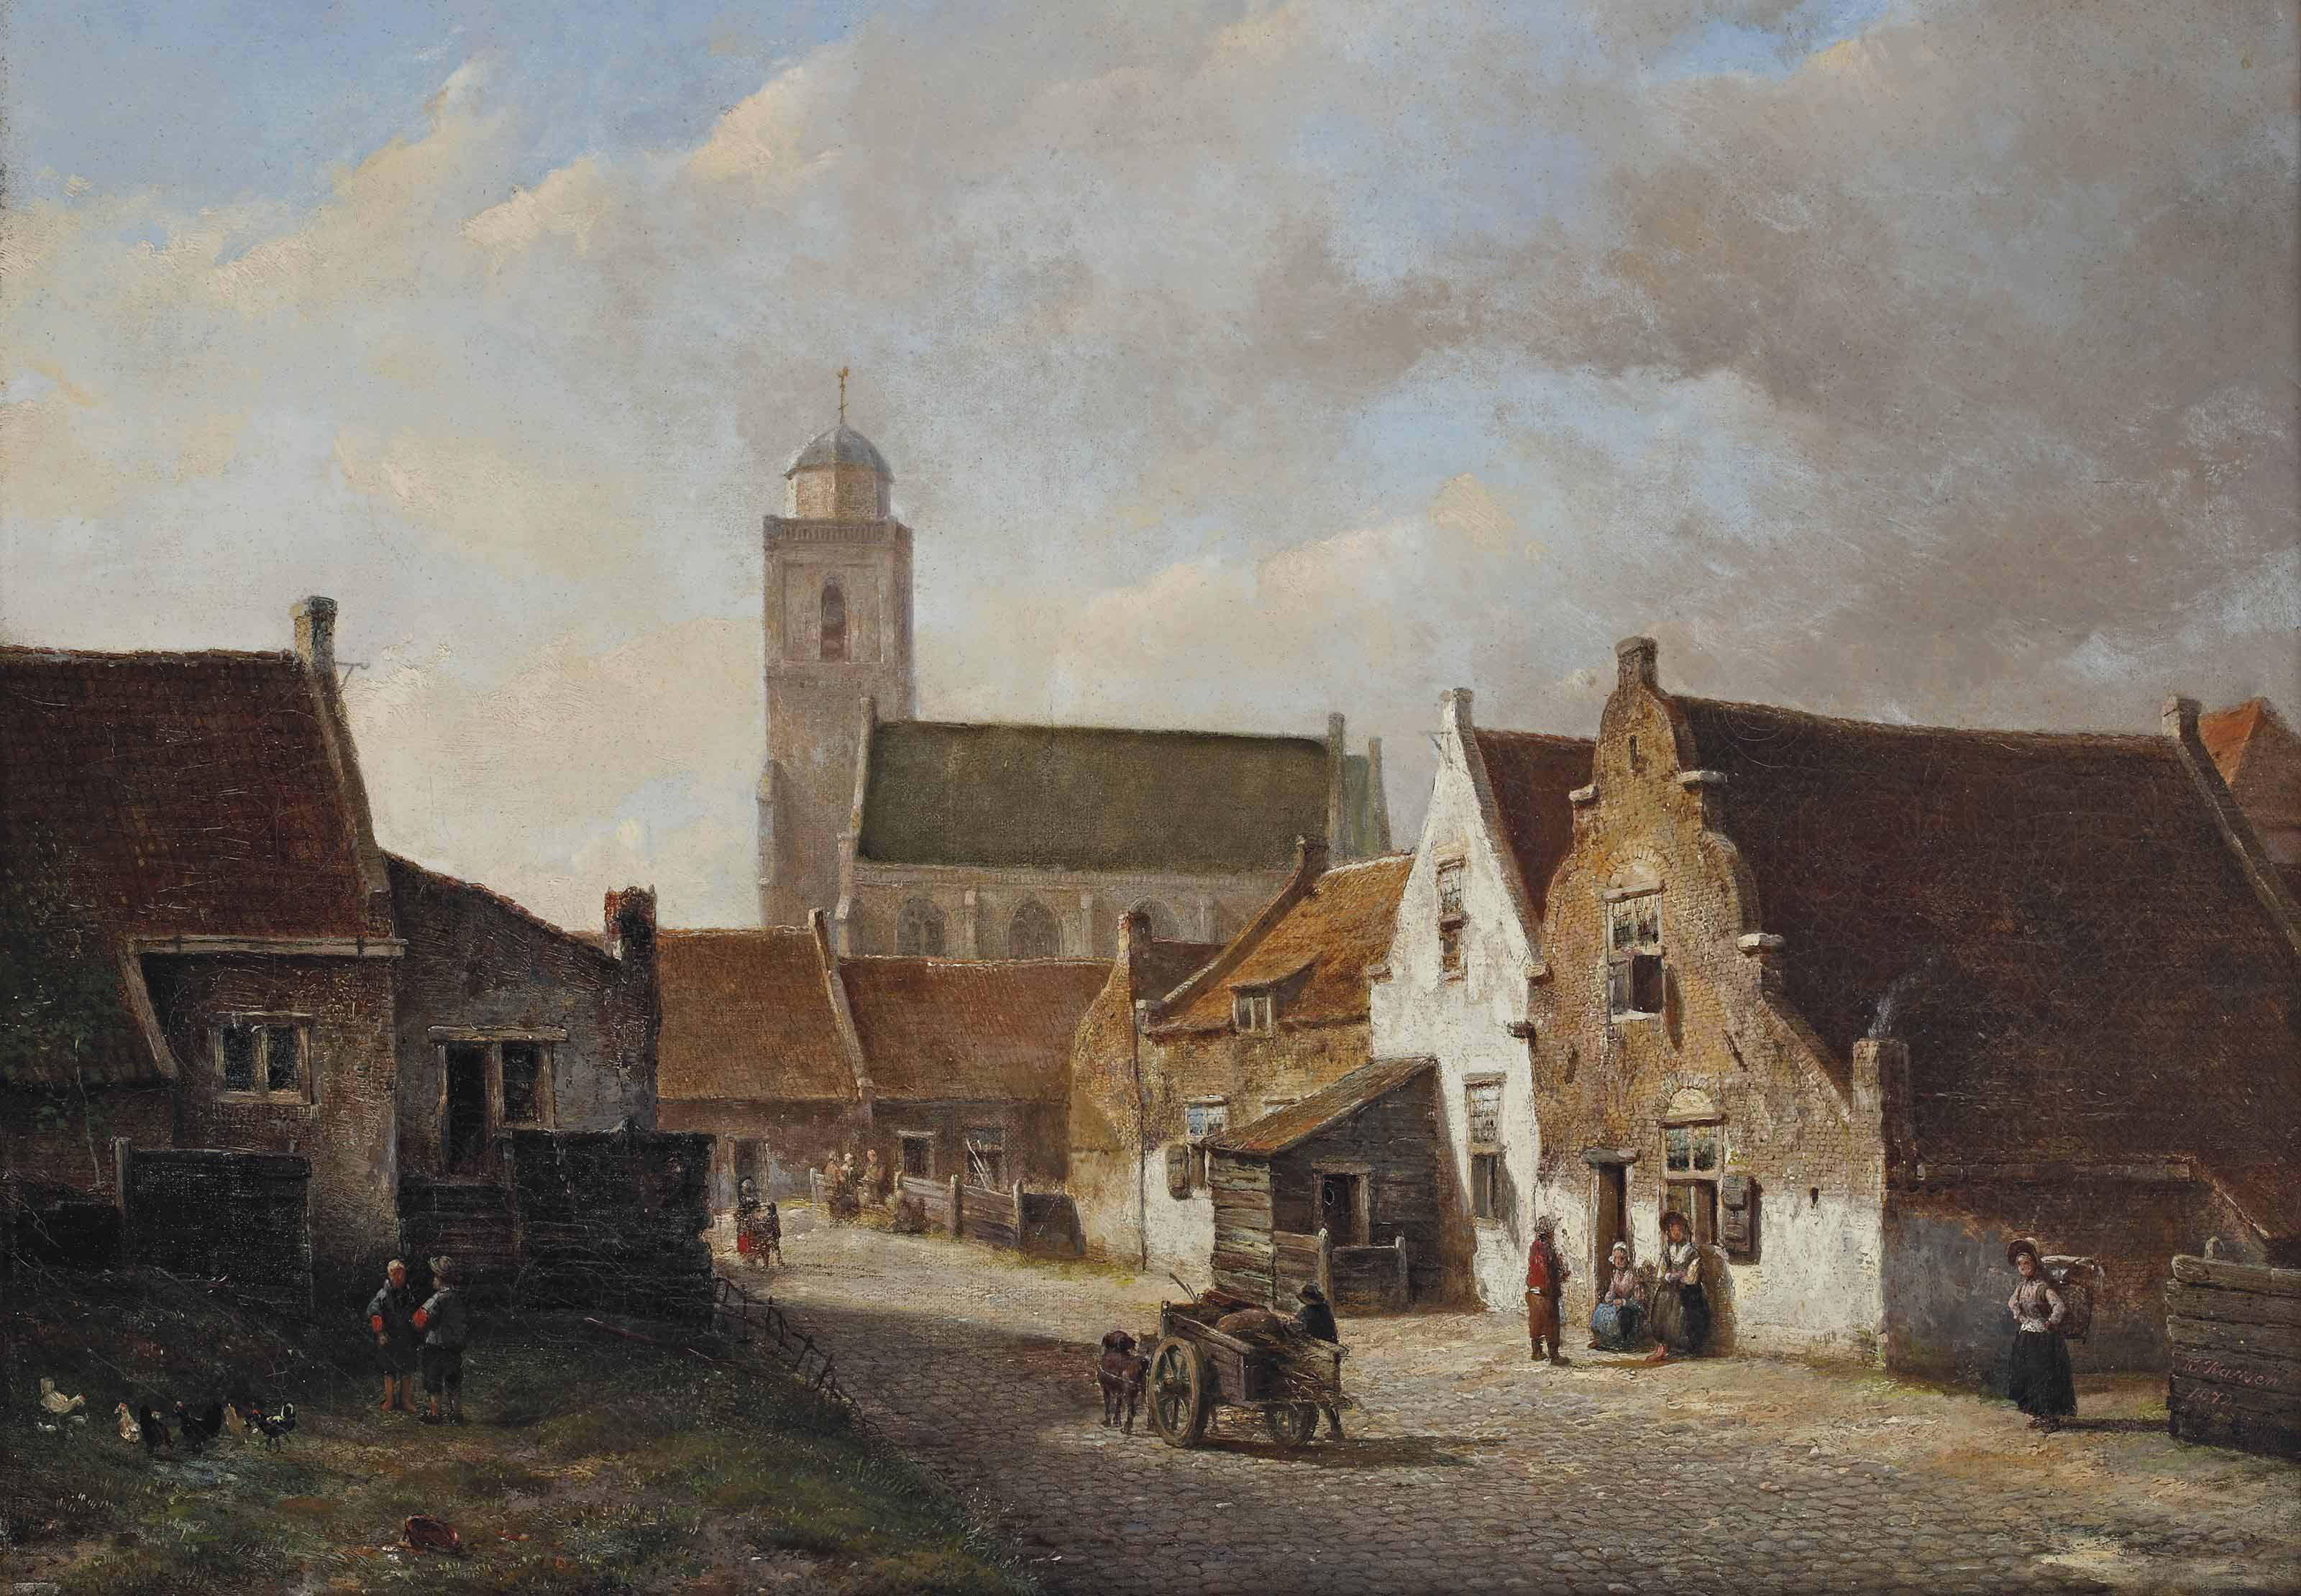 A view of the Kerksteeg with the Oude Kerk, Katwijk